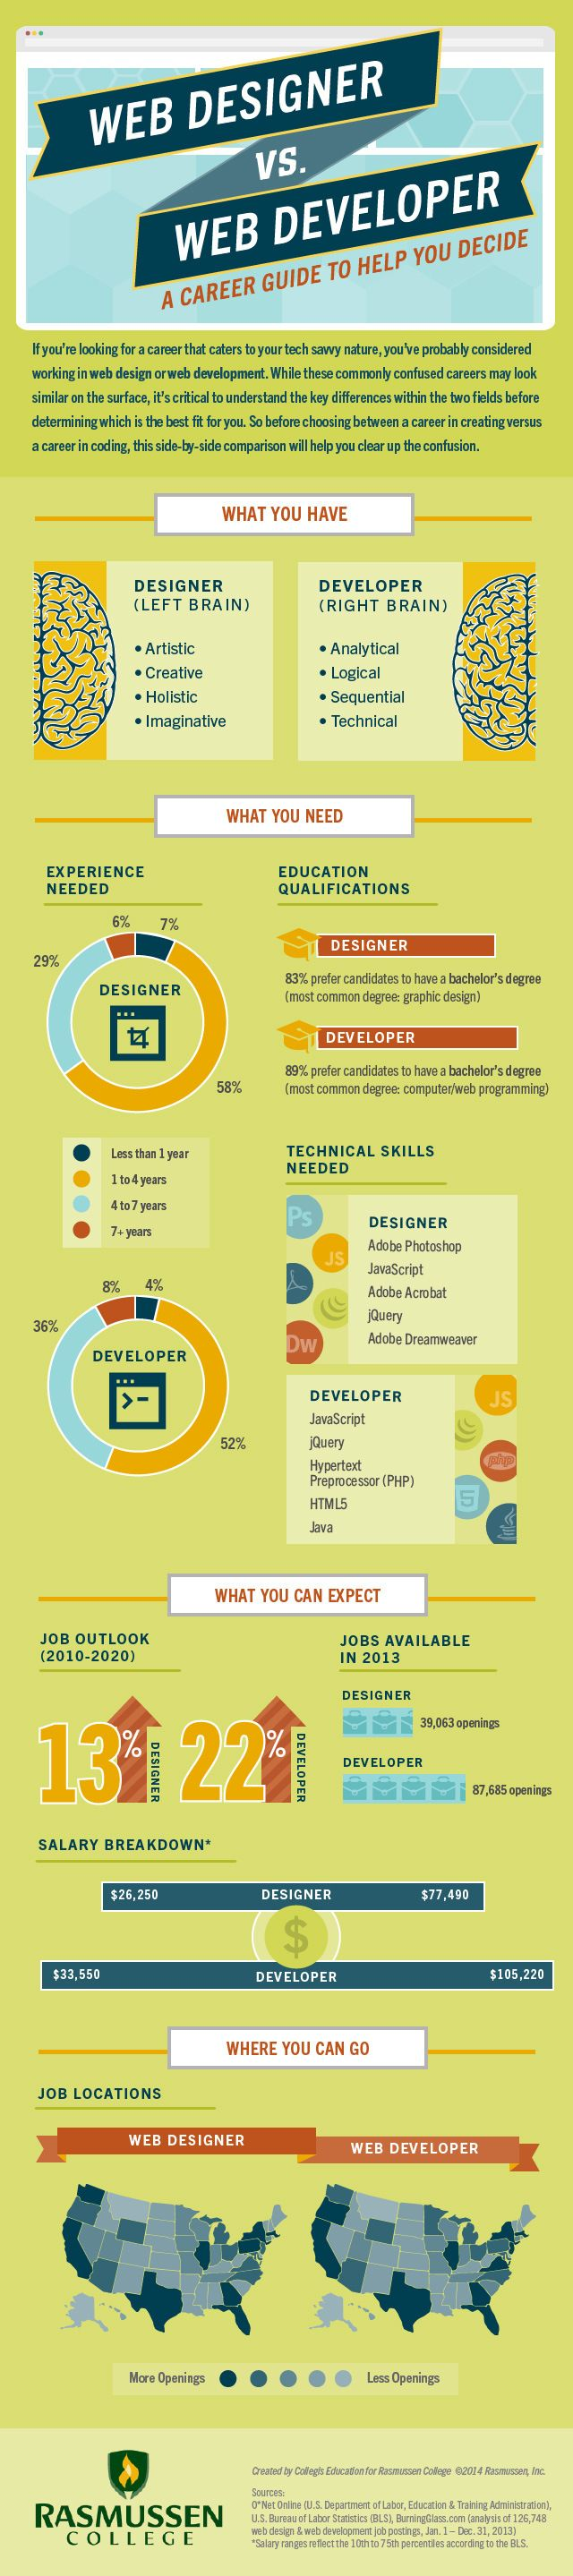 Web Designer Vs Web Developer A Career Guide To Help You Decide Infographic Fribly Web Development Design Web Design Web Design Tips